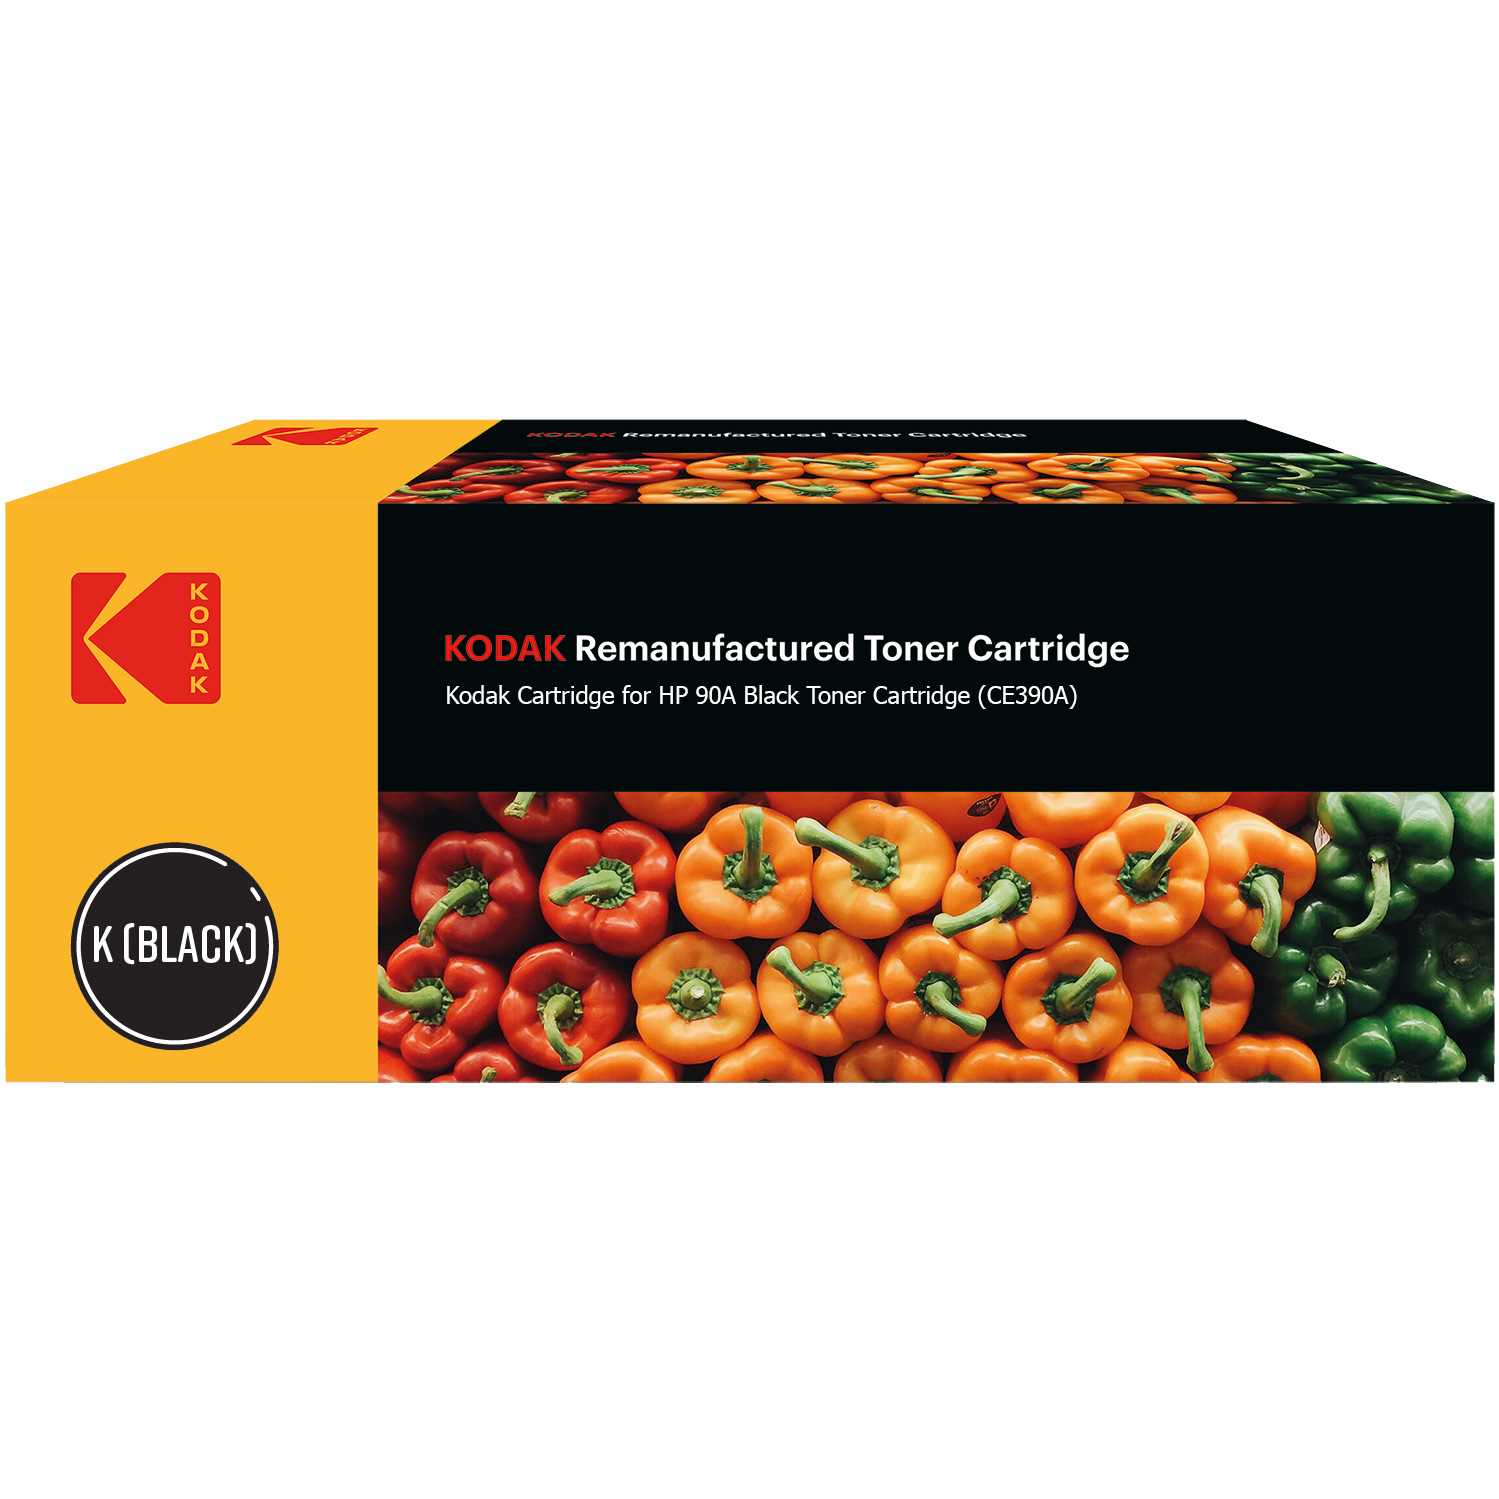 Ultimate HP 90A Black Toner Cartridge (CE390A) (Kodak KODCE390A)